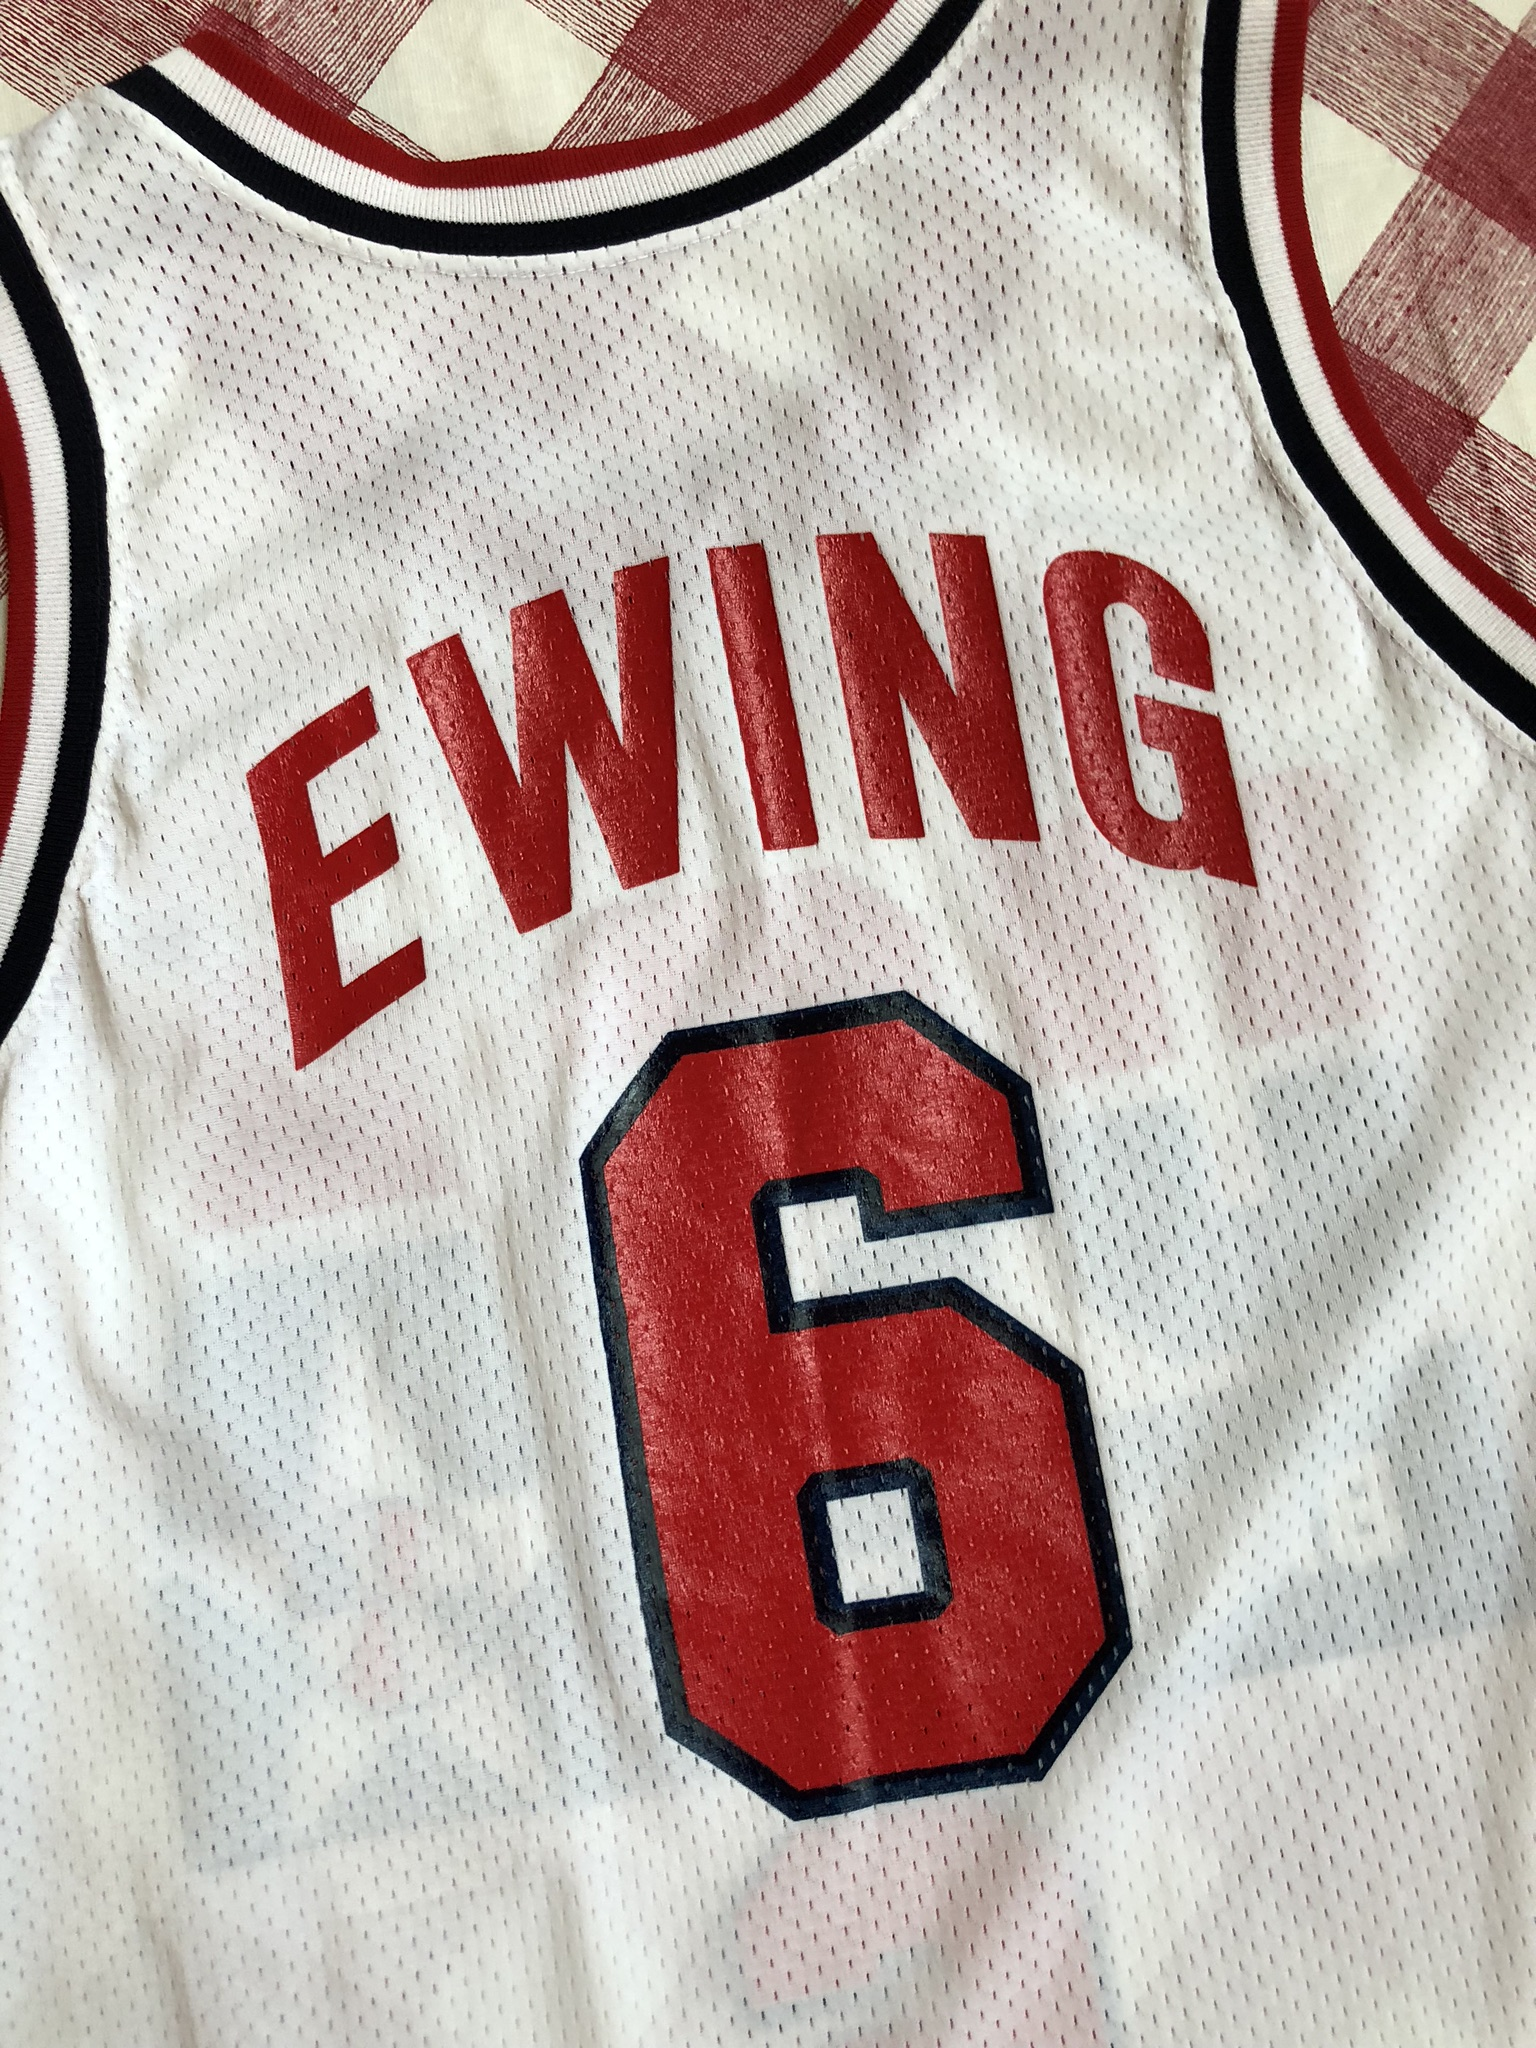 6a6ef8a3 1992 Patrick Ewing Team USA Dream Team Champion Jersey Size 40 ...